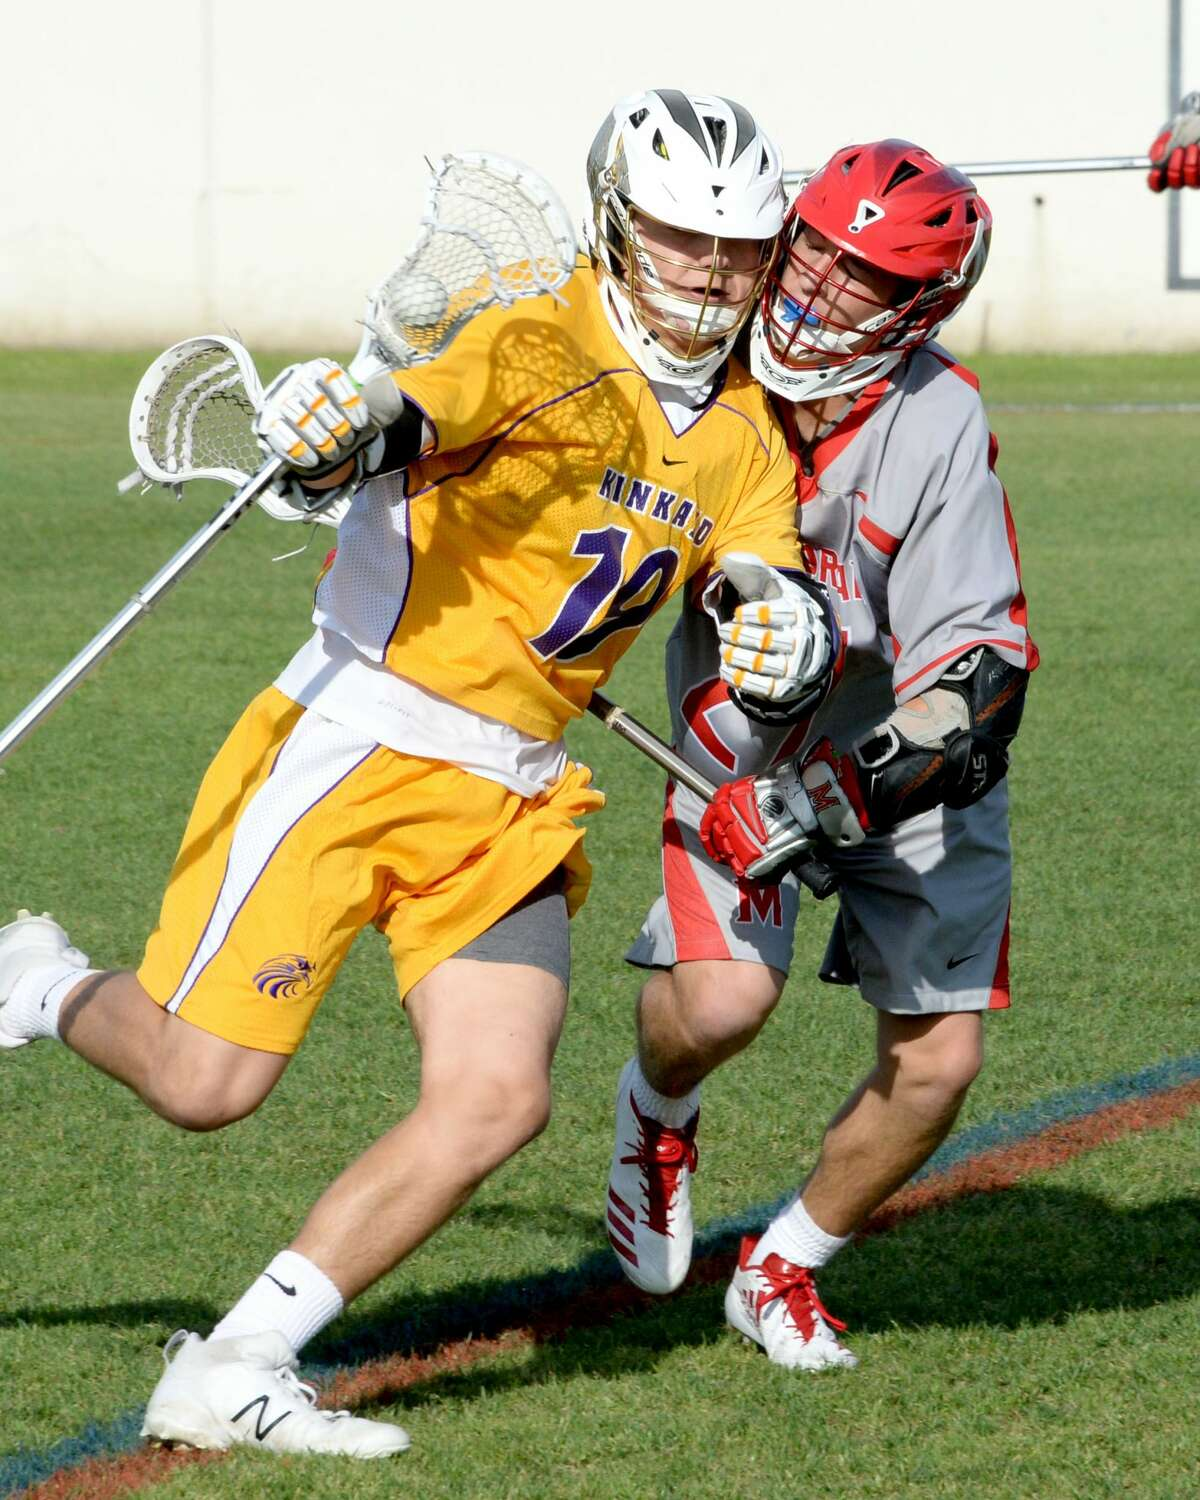 Jacob Magelssen (19) of Kinkaid advances the ball in the first quarter of a varsity boys lacrosse match between the Memorial Mustangs and the Kinkaid Falcons on Thursday April 13, 2017 at Grob Stadium, Houston, TX.